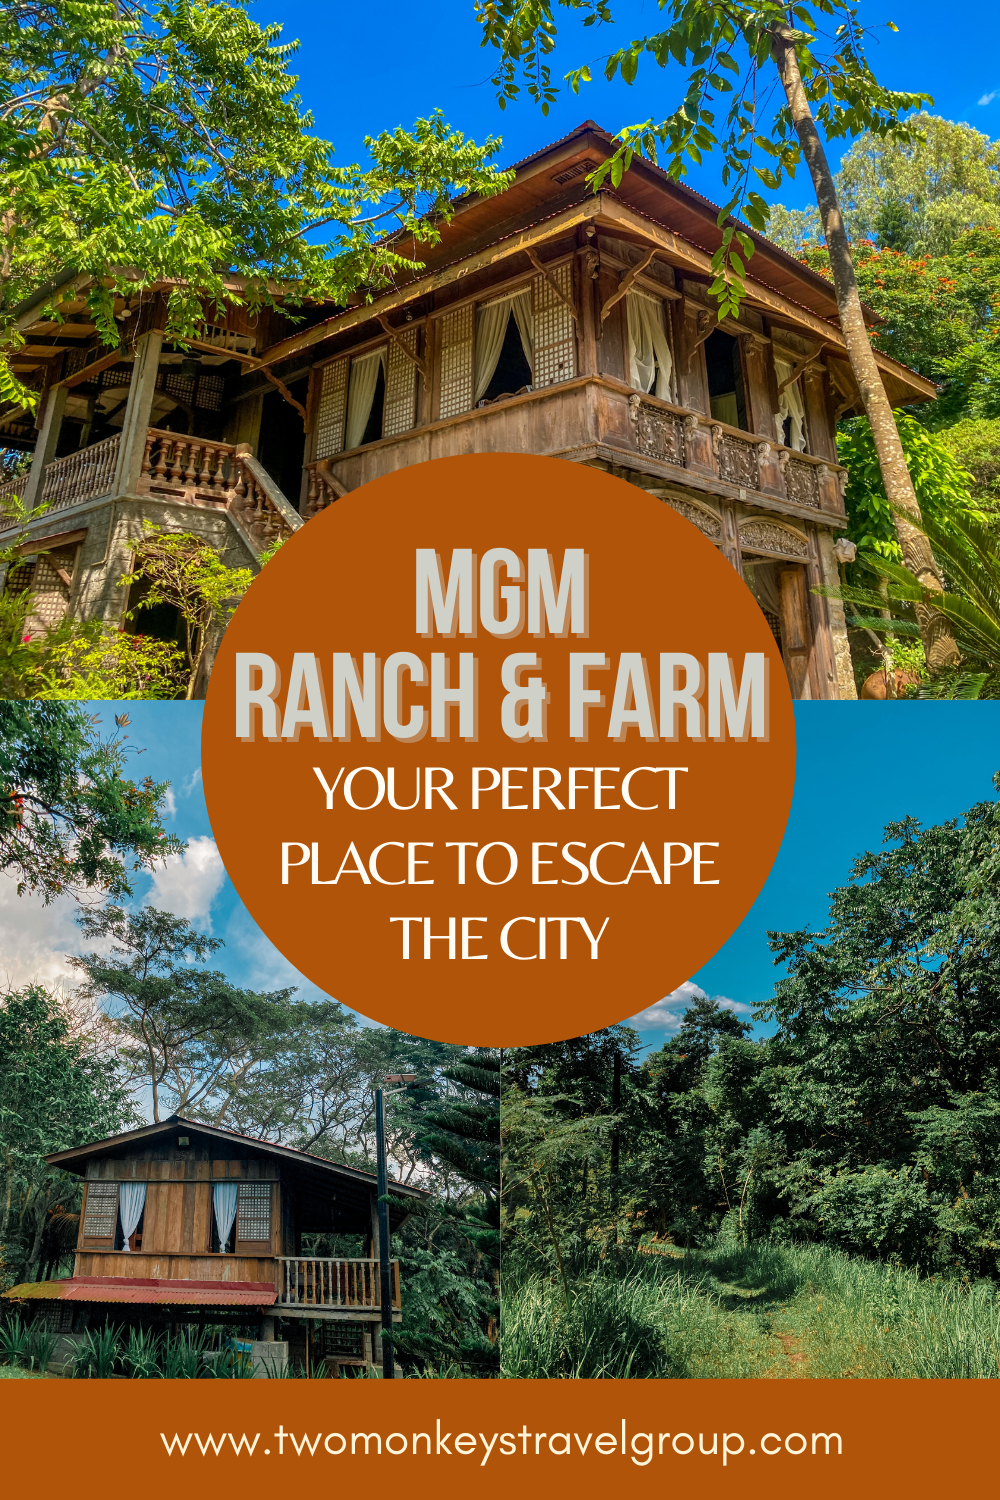 MGM Ranch and Farm Your Perfect Place to Escape the City